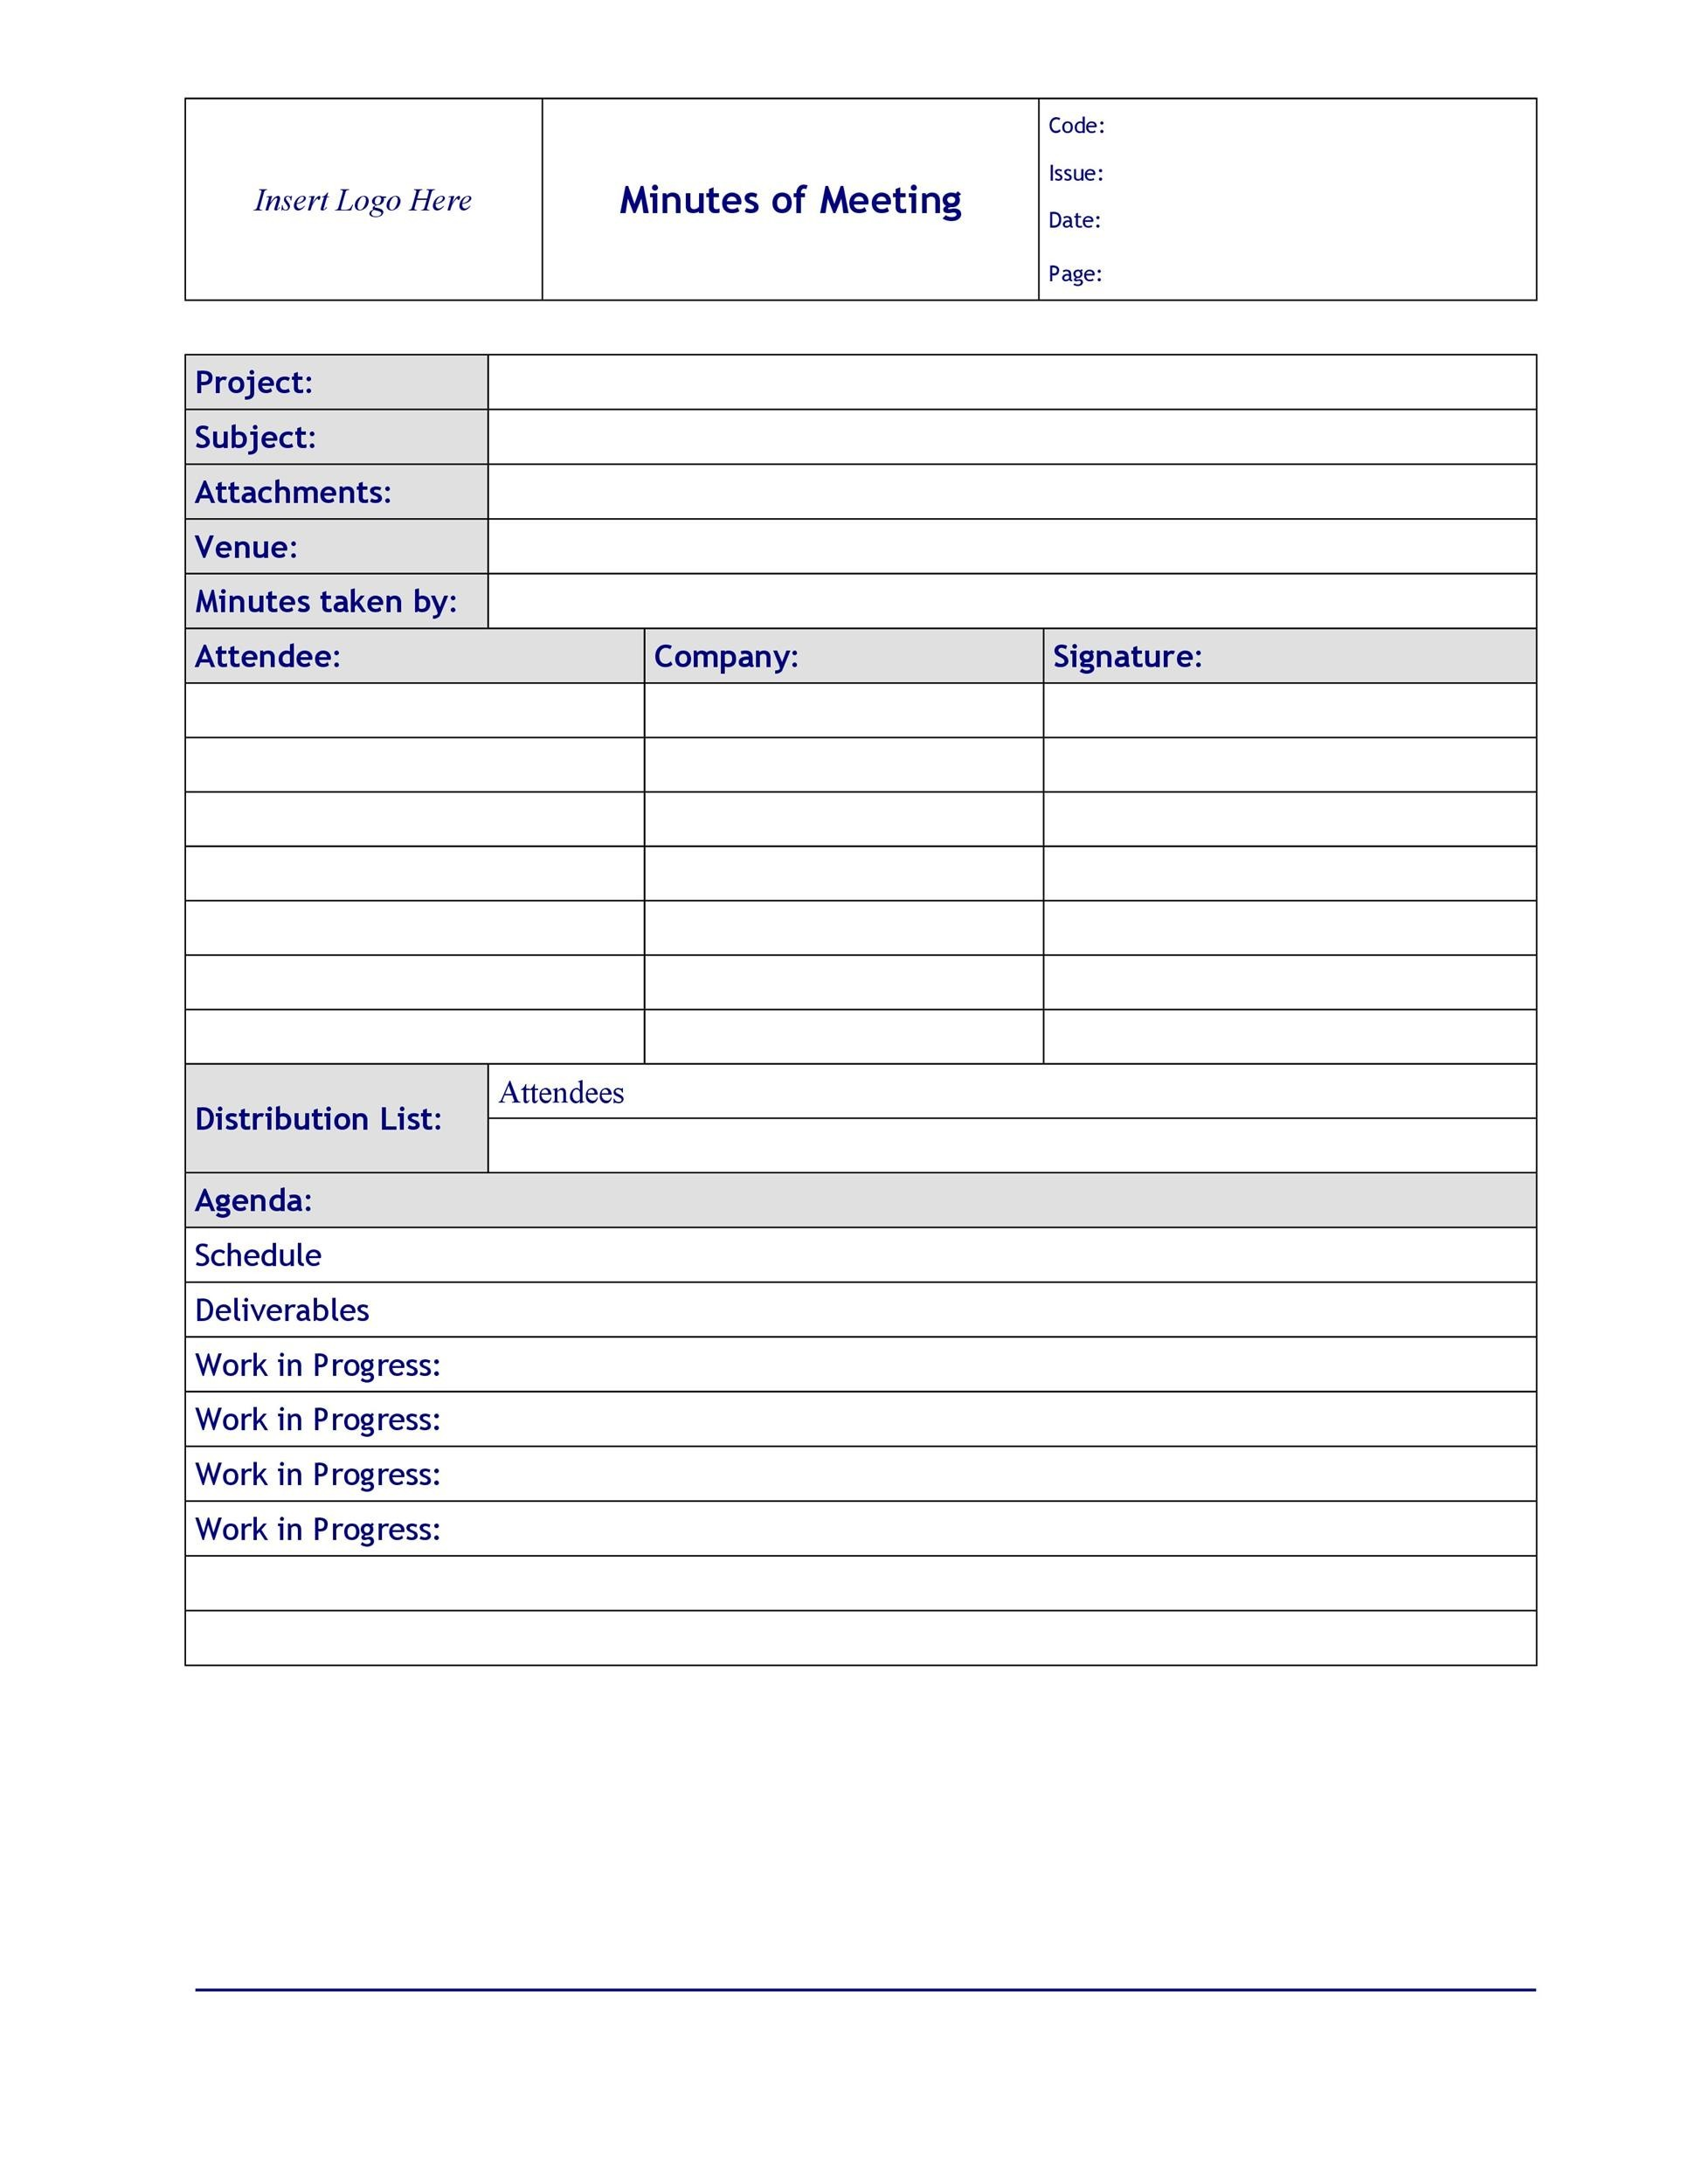 20 handy meeting minutes meeting notes templates for Standard minutes of meeting template